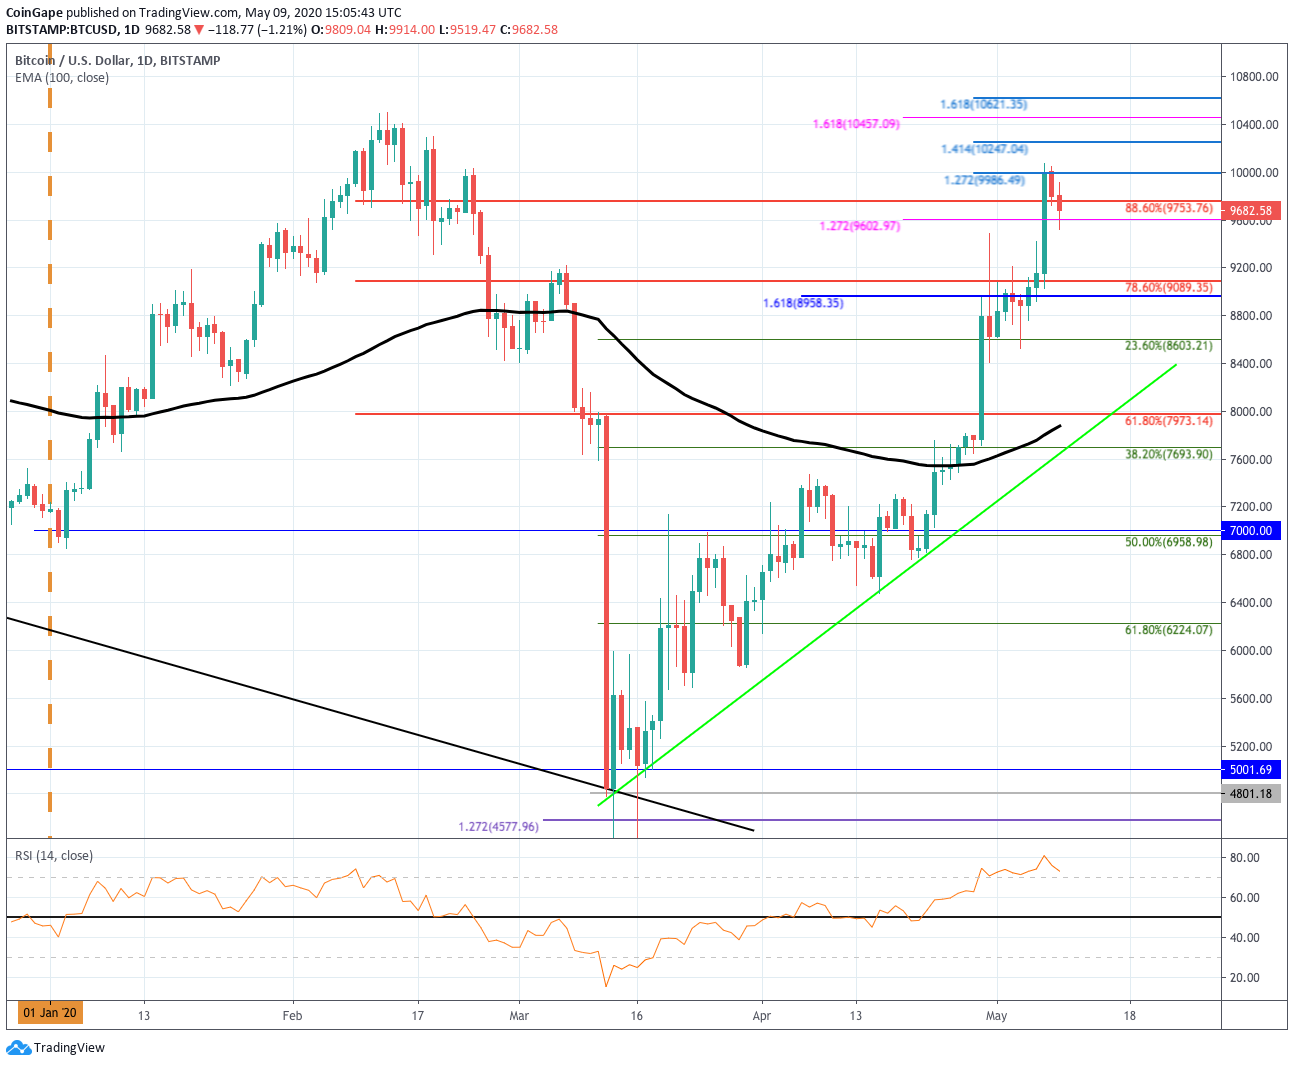 Bitcoin Price Analysis: BTC Drops With Just 2-days To Go Until Halving – What Is Going On?